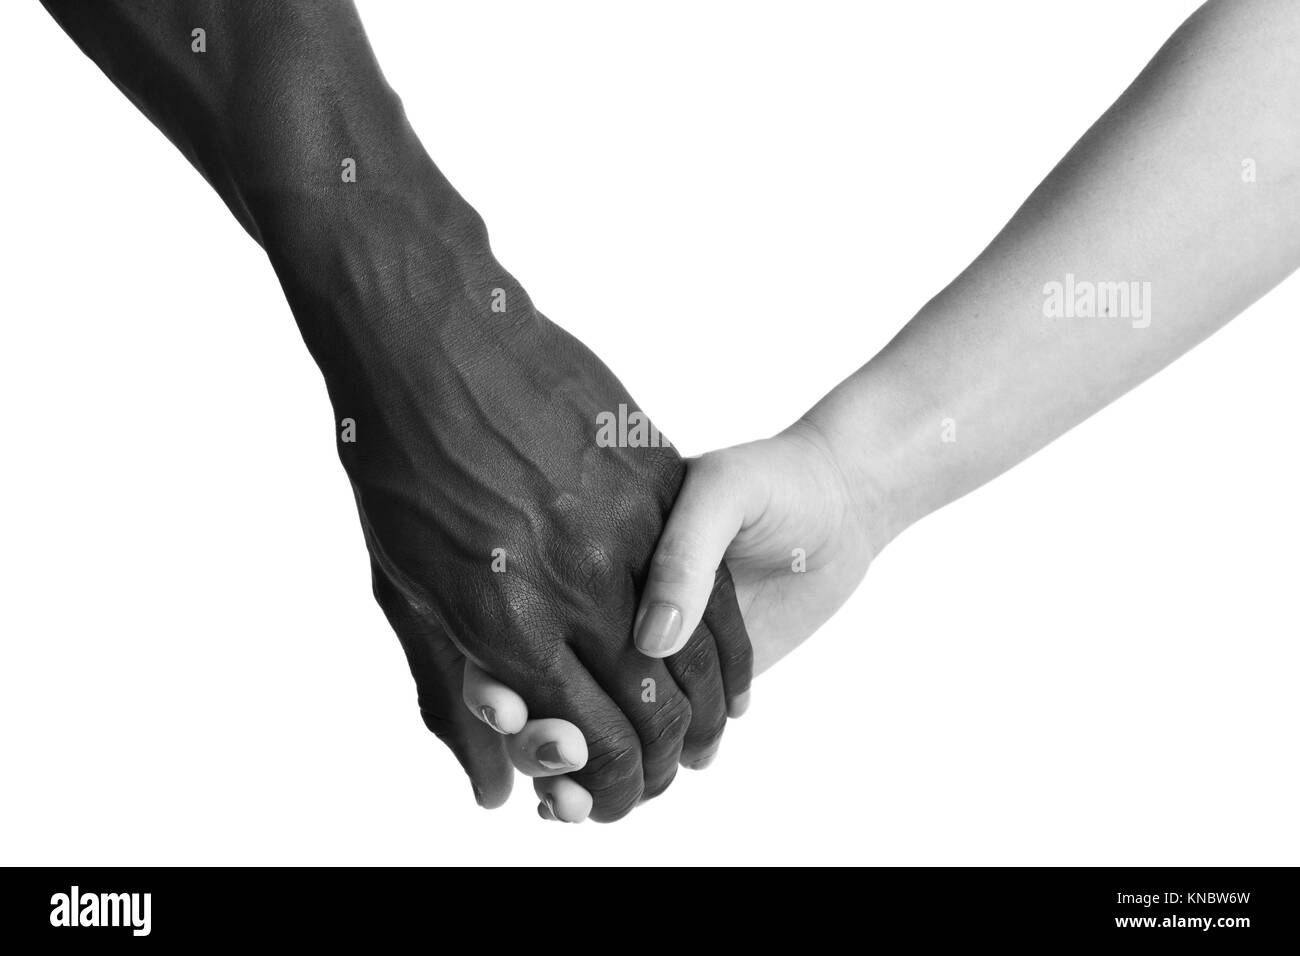 One caucasian and one african hand on white background. Stock Photo